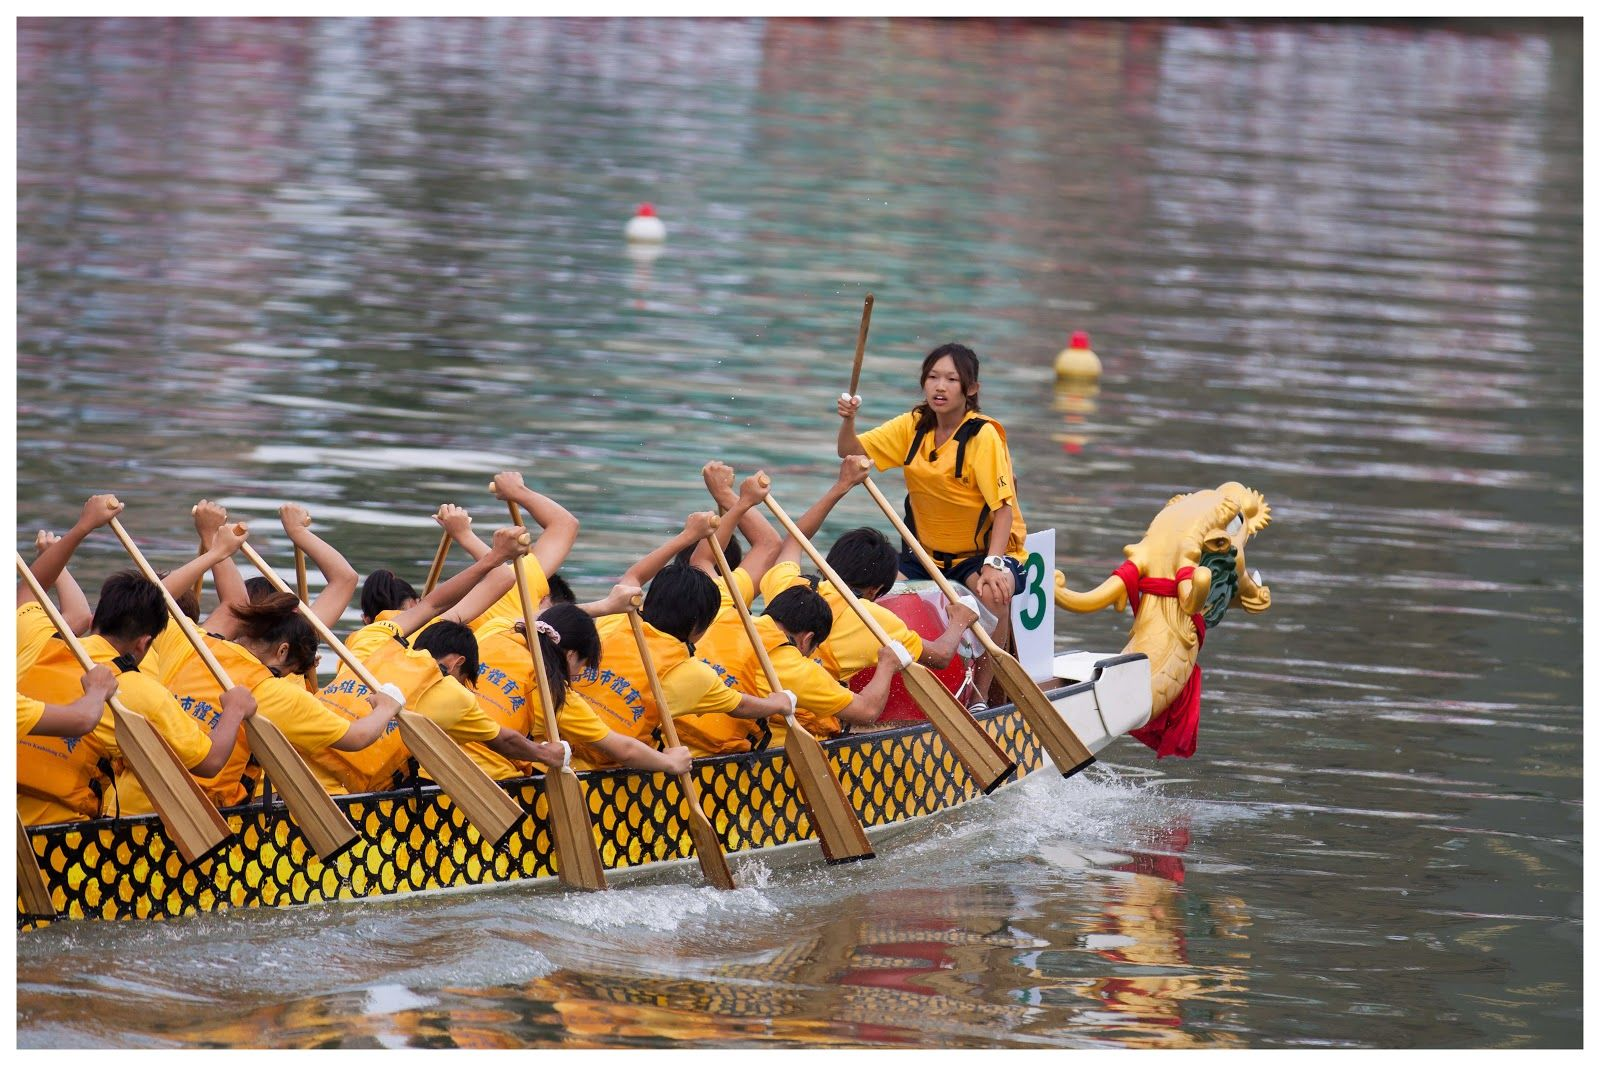 What Is a Dragon Boat | Dragon Boat Festival 2012 高雄市龍舟賽